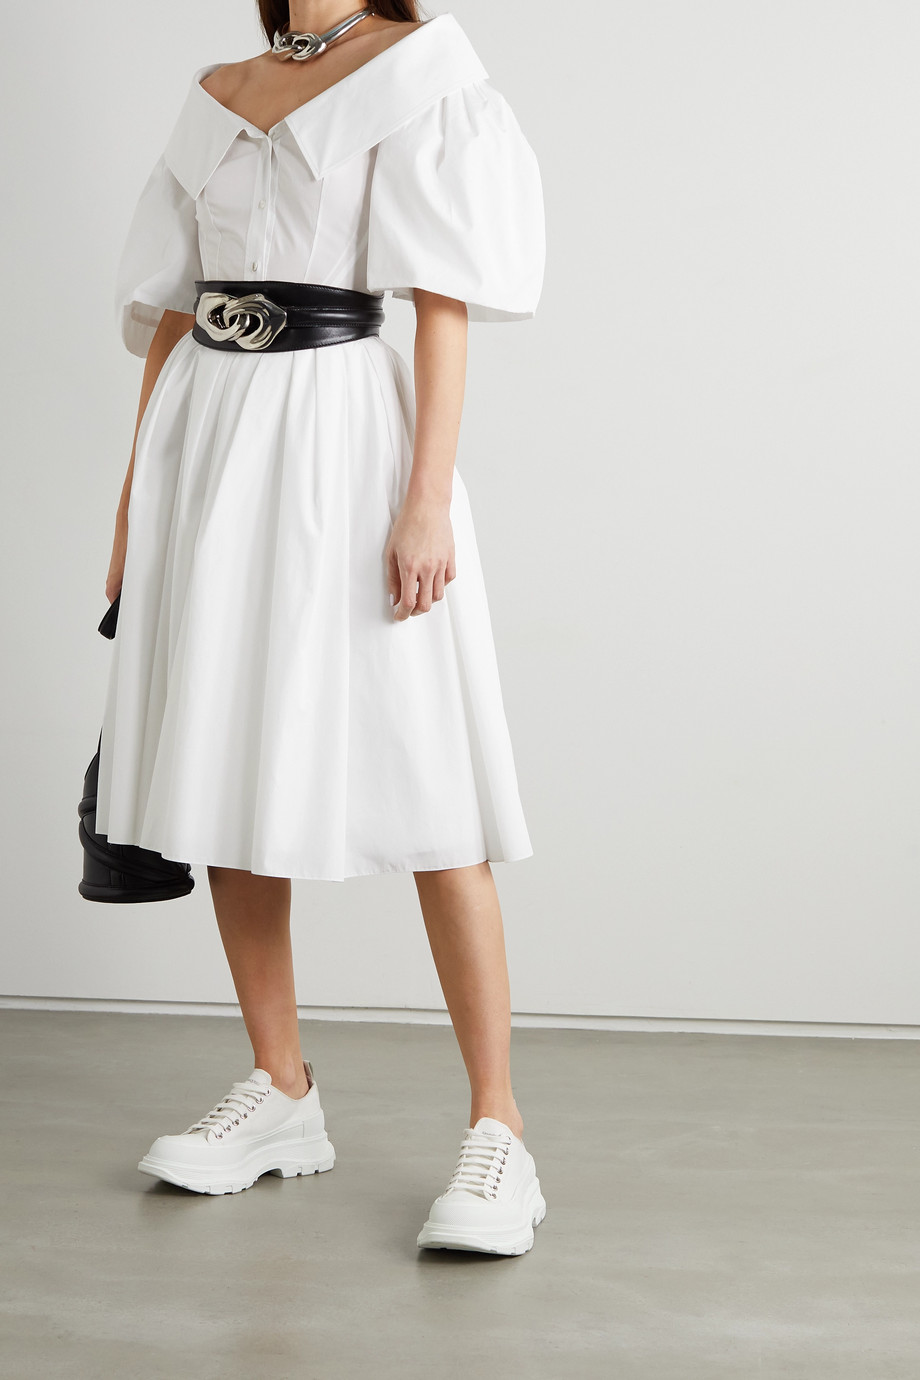 ALEXANDER MCQUEEN Cotton-poplin shirt dress